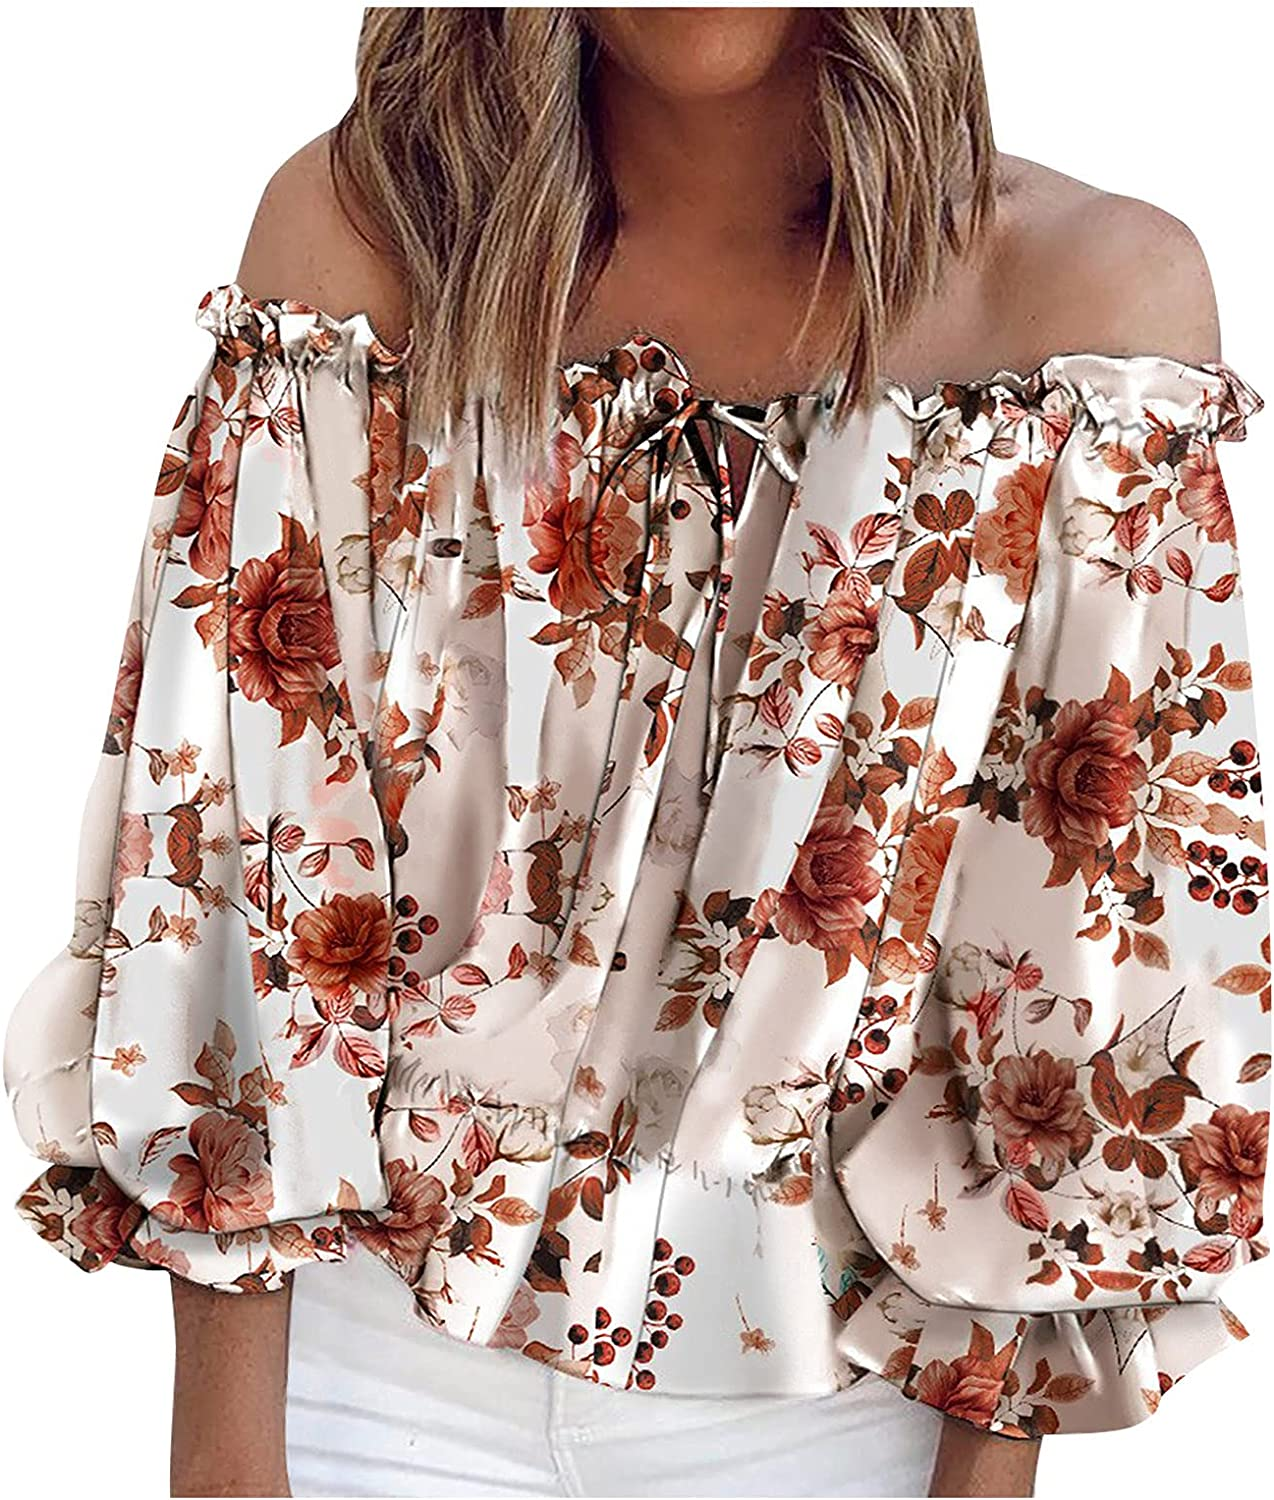 Womens Tops Off Shoulder Tops Summer Sexy Boho Floral Print One Shoulder Shirts Chiffon Casual Short Sleeve Blouse